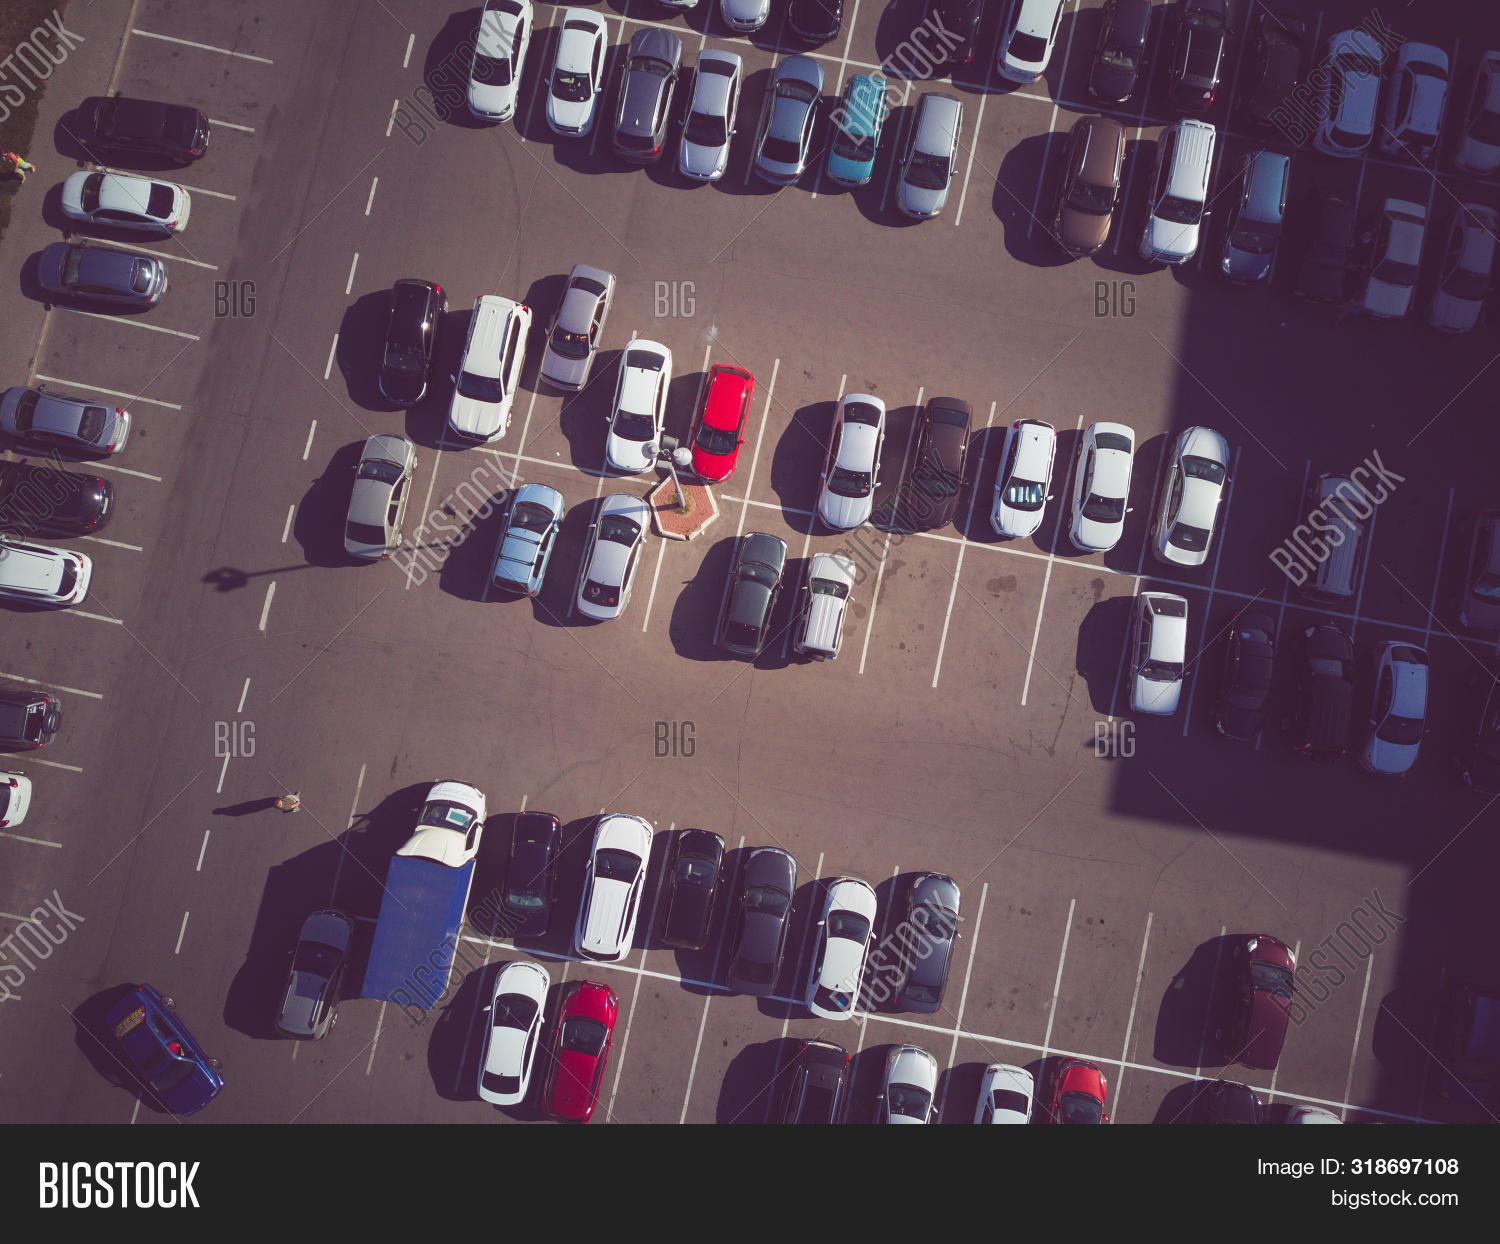 A view from above to the process of car parking. Heavy traffic in the parking lot. Searching for spaces in the busy car park. Parking advice. Cruising for parking in busy business center